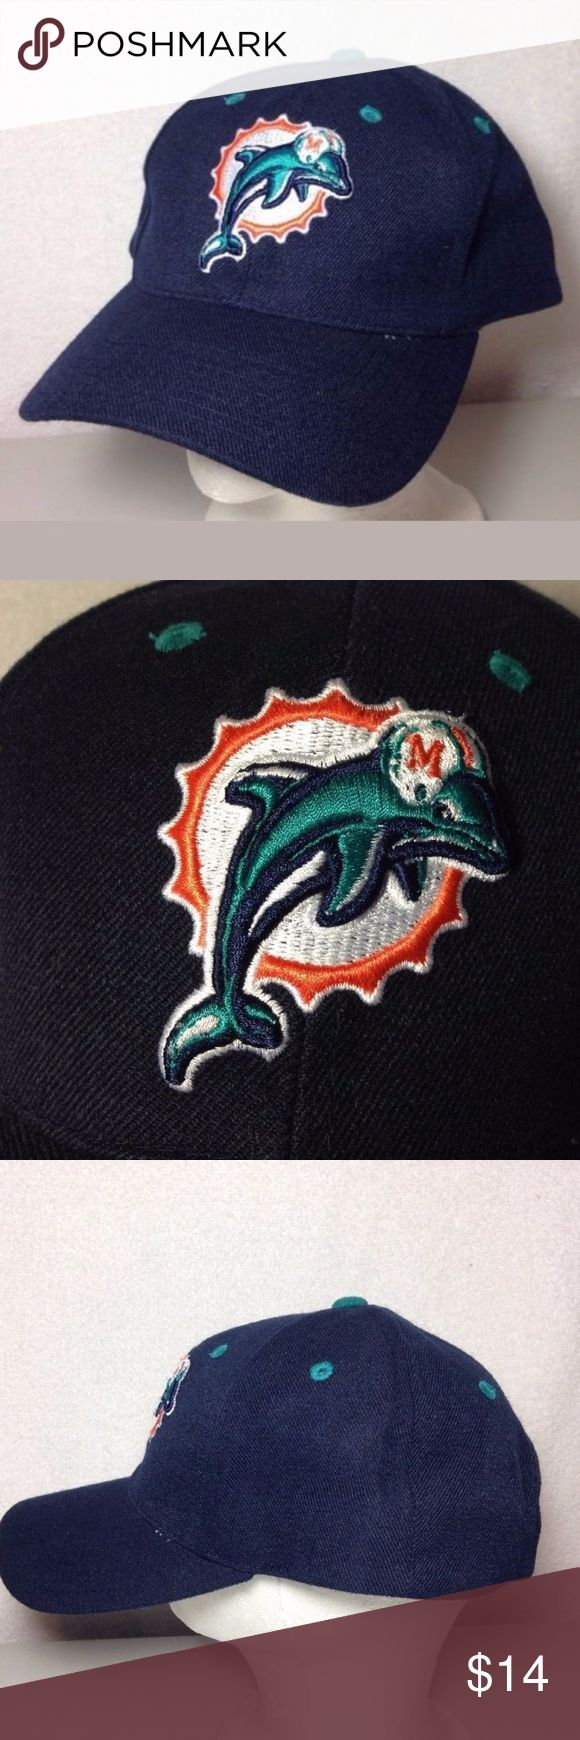 Puma Miami Dolphins Hat Old School Logo Adjustable Great looking hat. Adjustable. Old school Miami Dolphins embroidered logo on front of hat. Made by PUMA and officially licensed by the NFL  Thankyou for viewing. Puma Accessories Hats